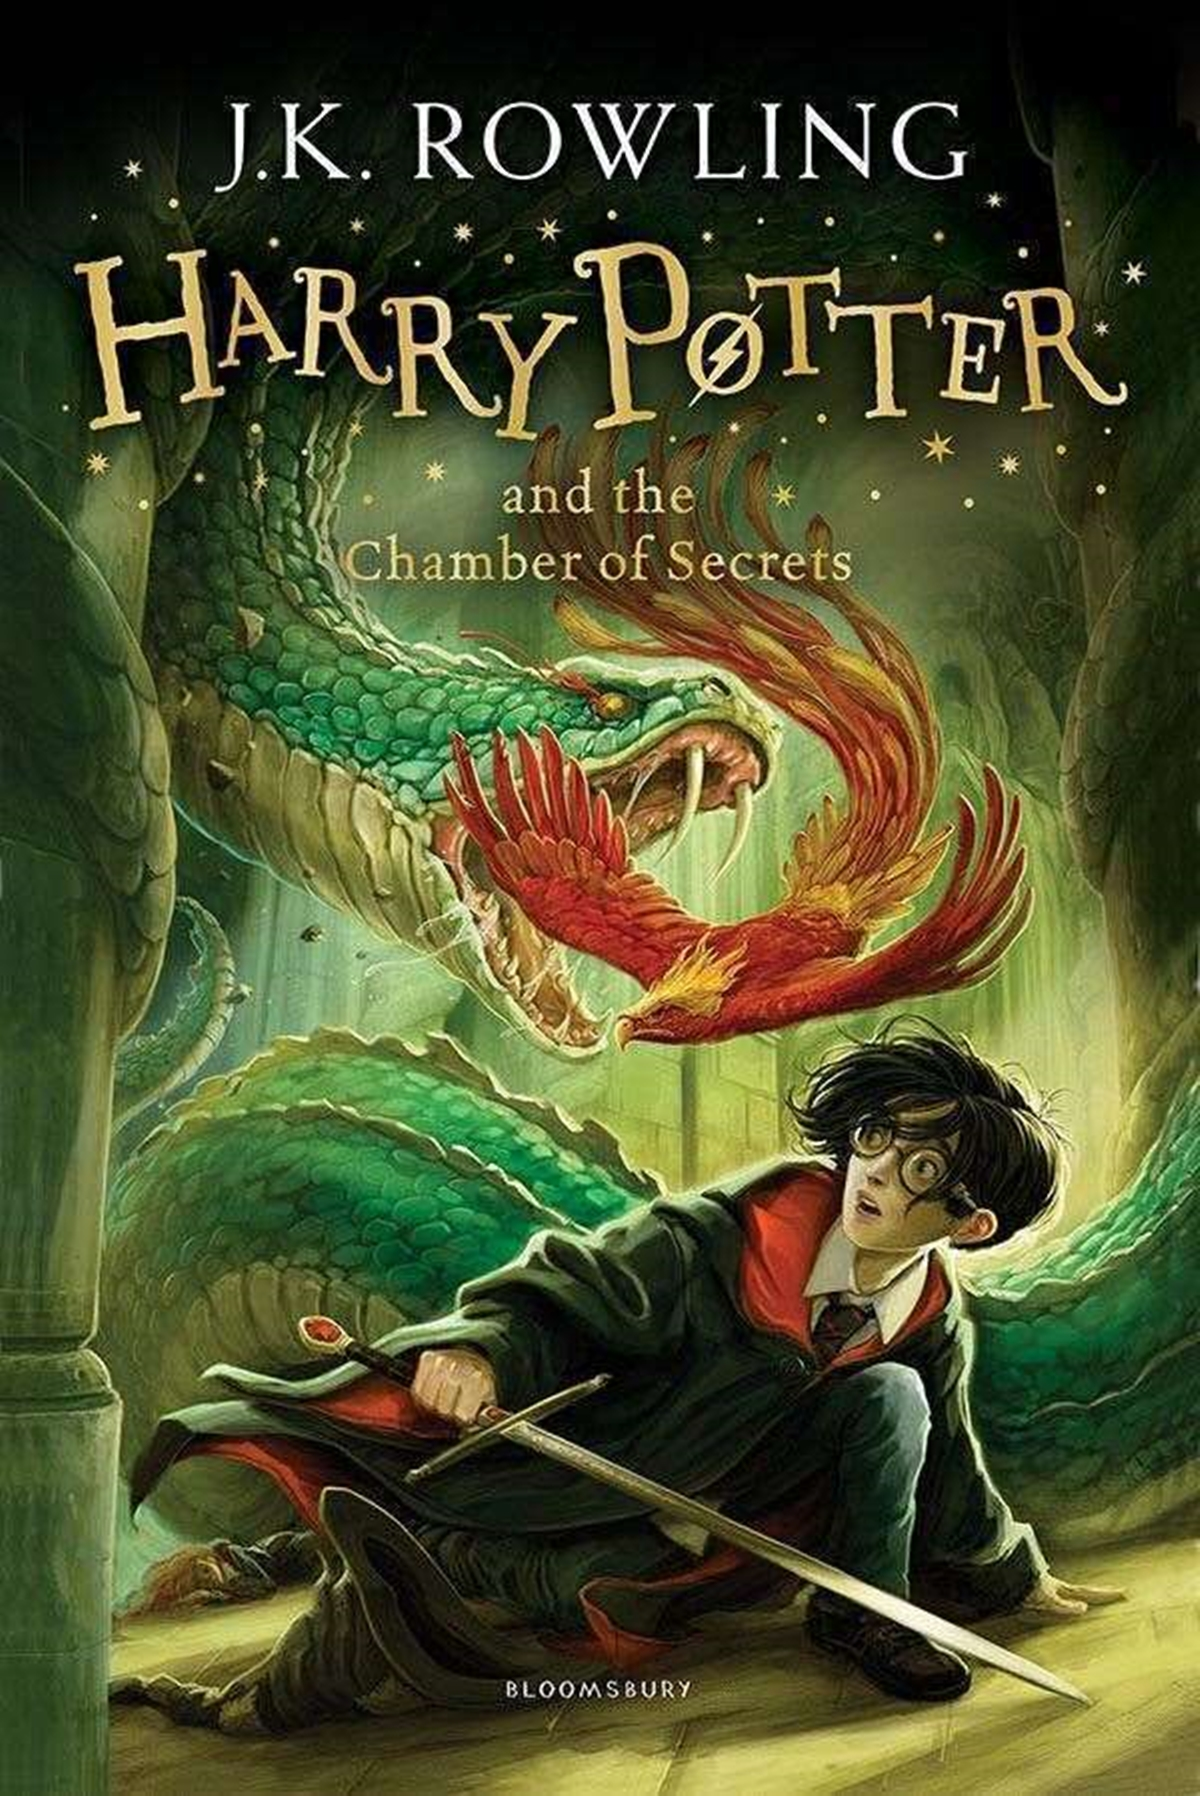 8 1 Are Your Harry Potter Books Worth A Lot Of Money? Here's How To Find Out!